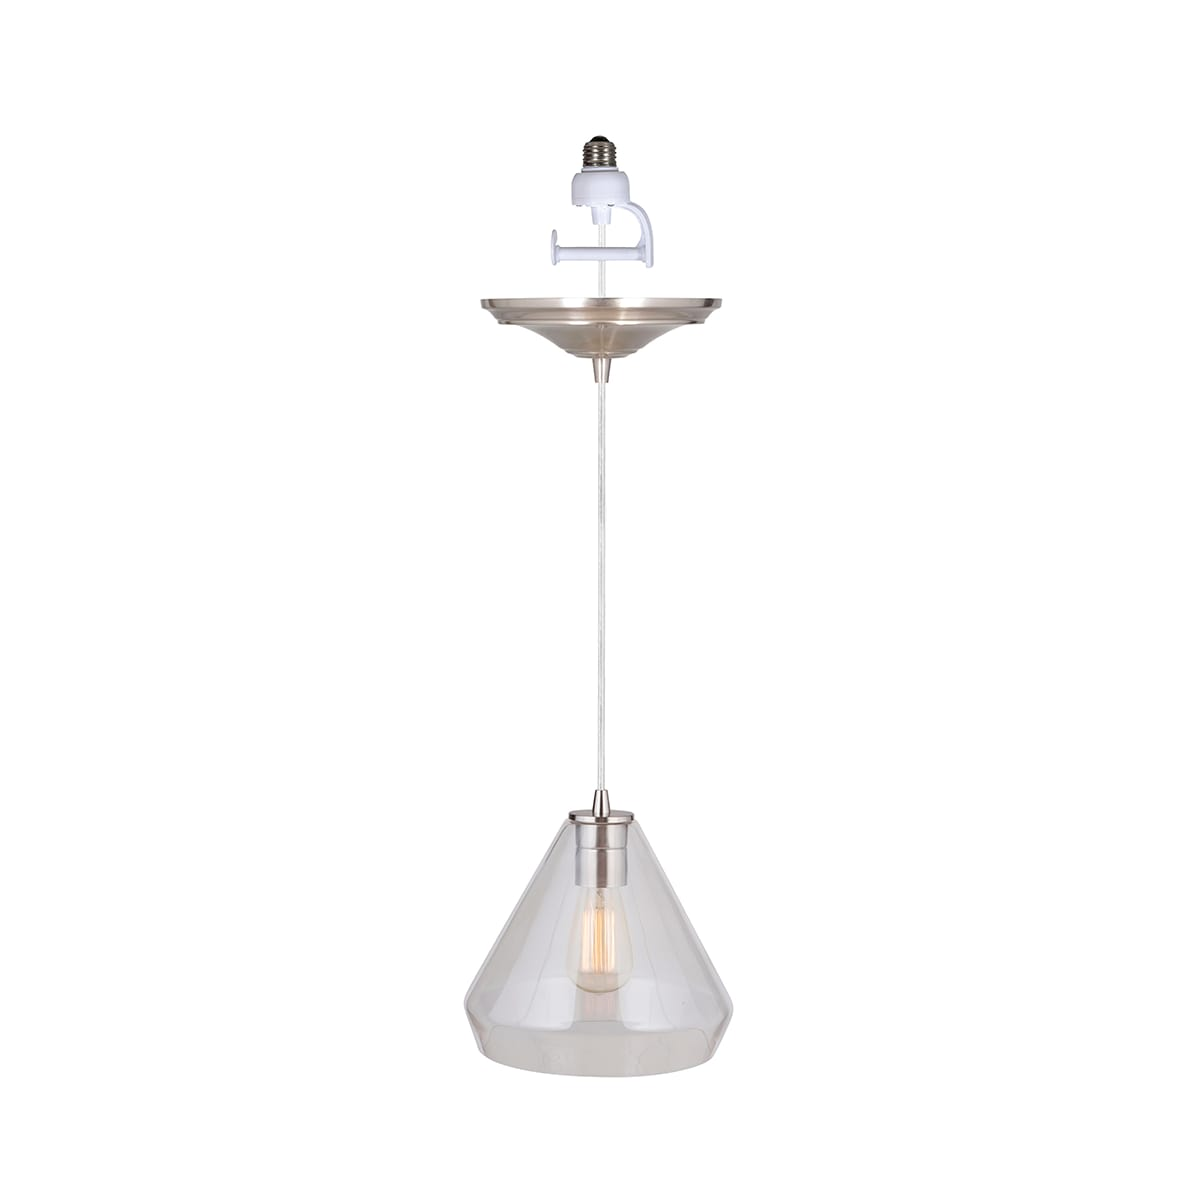 Worth Home Products Pbn 6003 0700 Brushed Nickel Instant Pendant Light For Shades Single Light 10 Wide Instant Pendant With Clear Glass Shade Lightingdirect Com